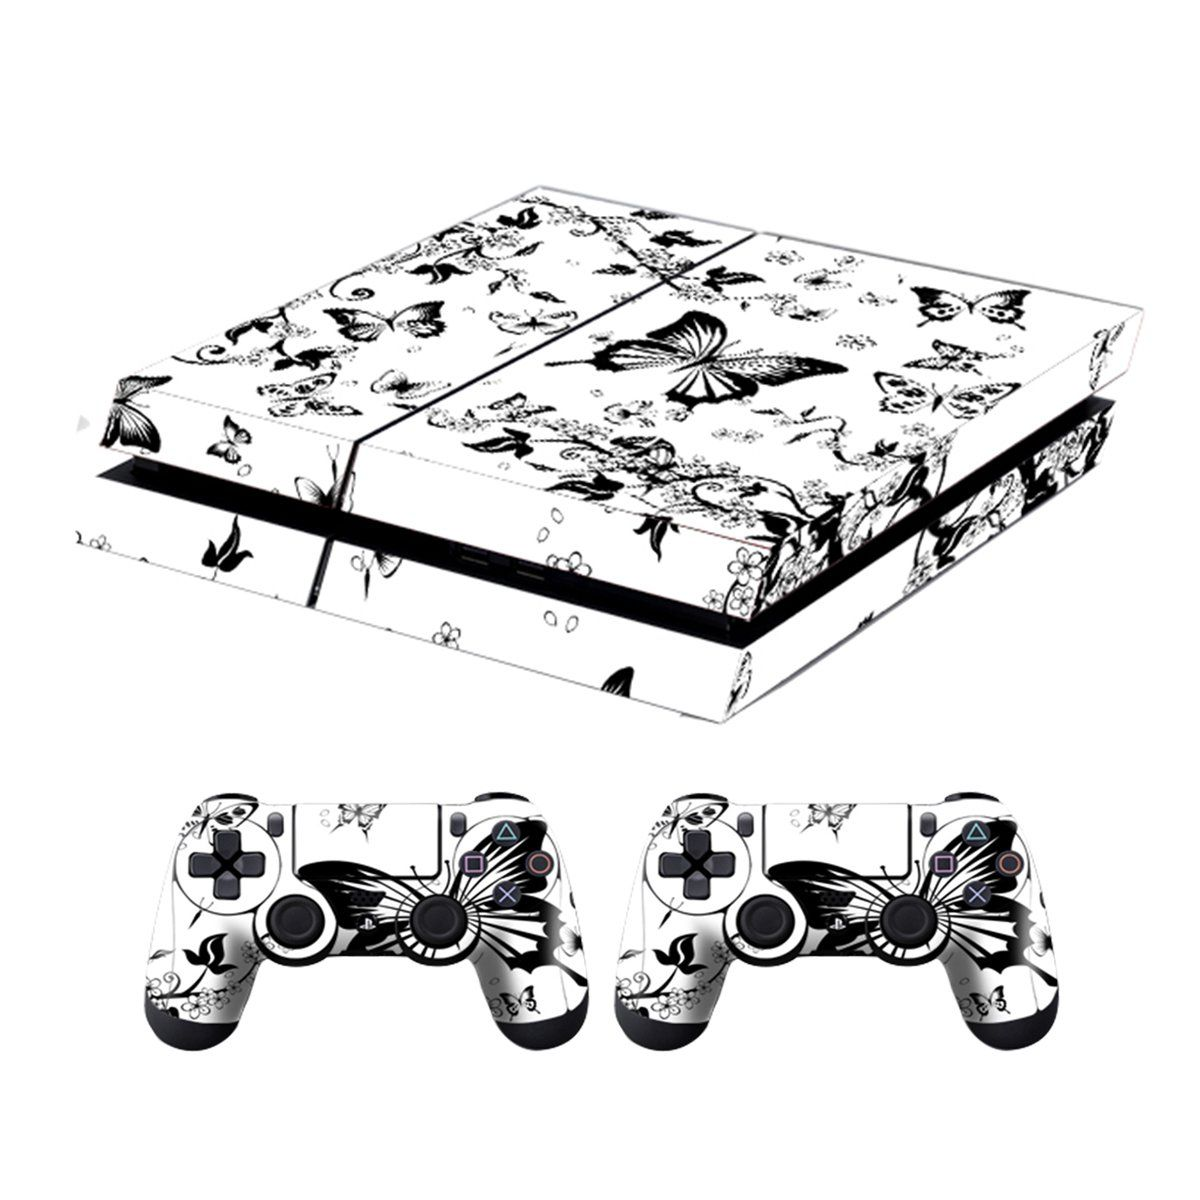 ps4 console designer skin for sony playstation 4 system plus two2 PS3 Controller Charger ps4 console designer skin for sony playstation 4 system plus two2 decals for ps4 dualshock controller white blossoms sonyplaystationaccessories